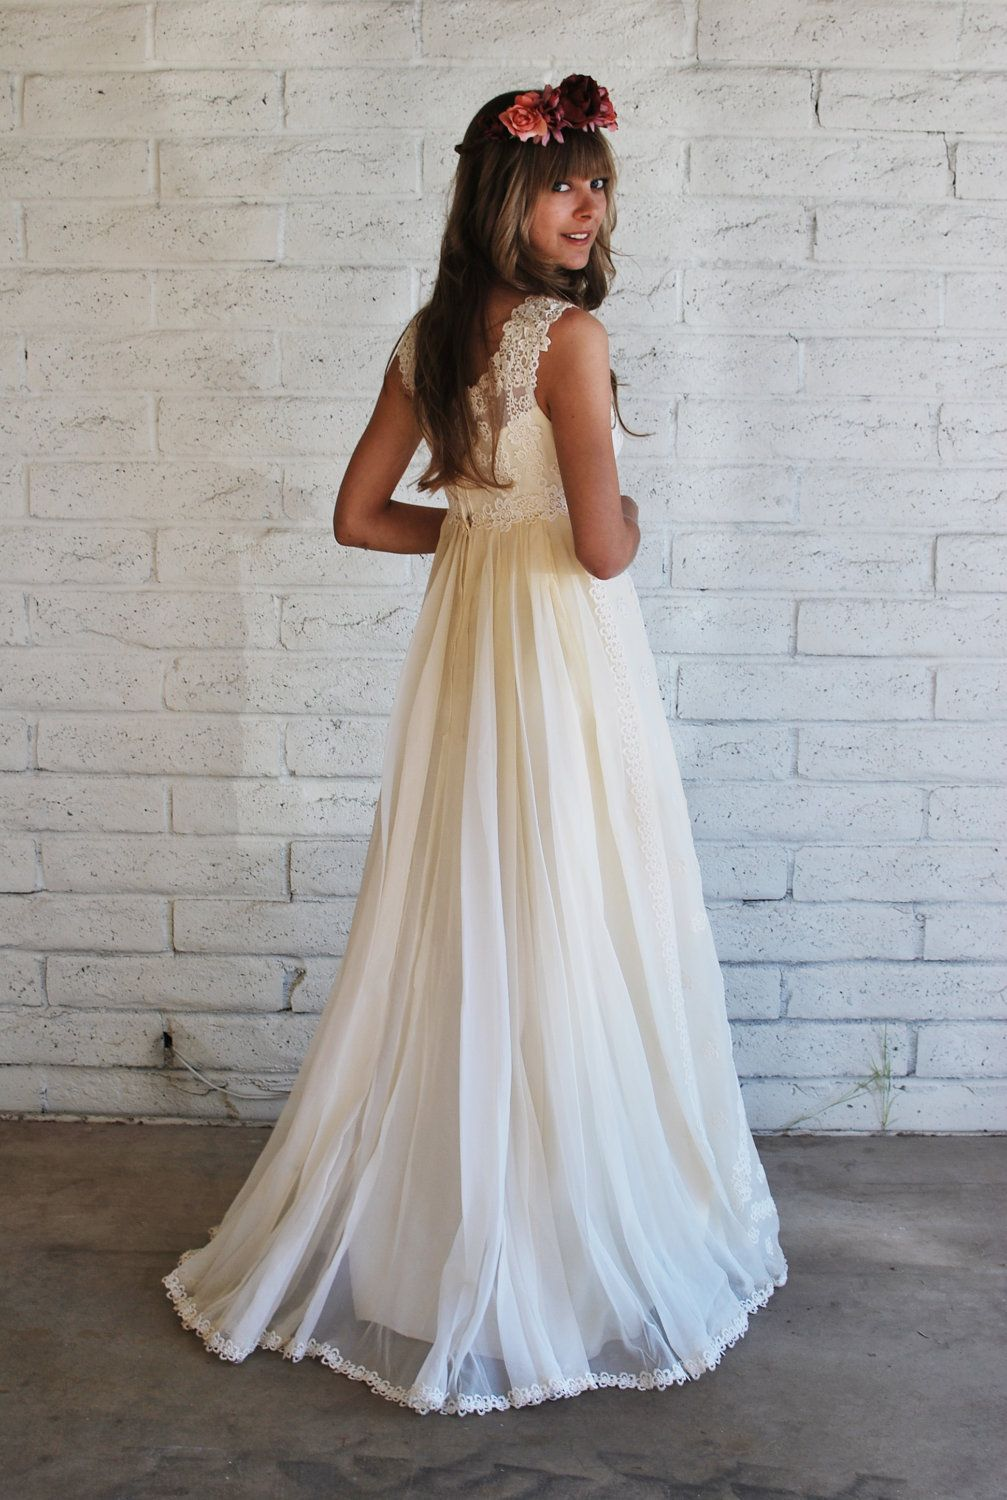 S boho wedding gown wedding style and gowns